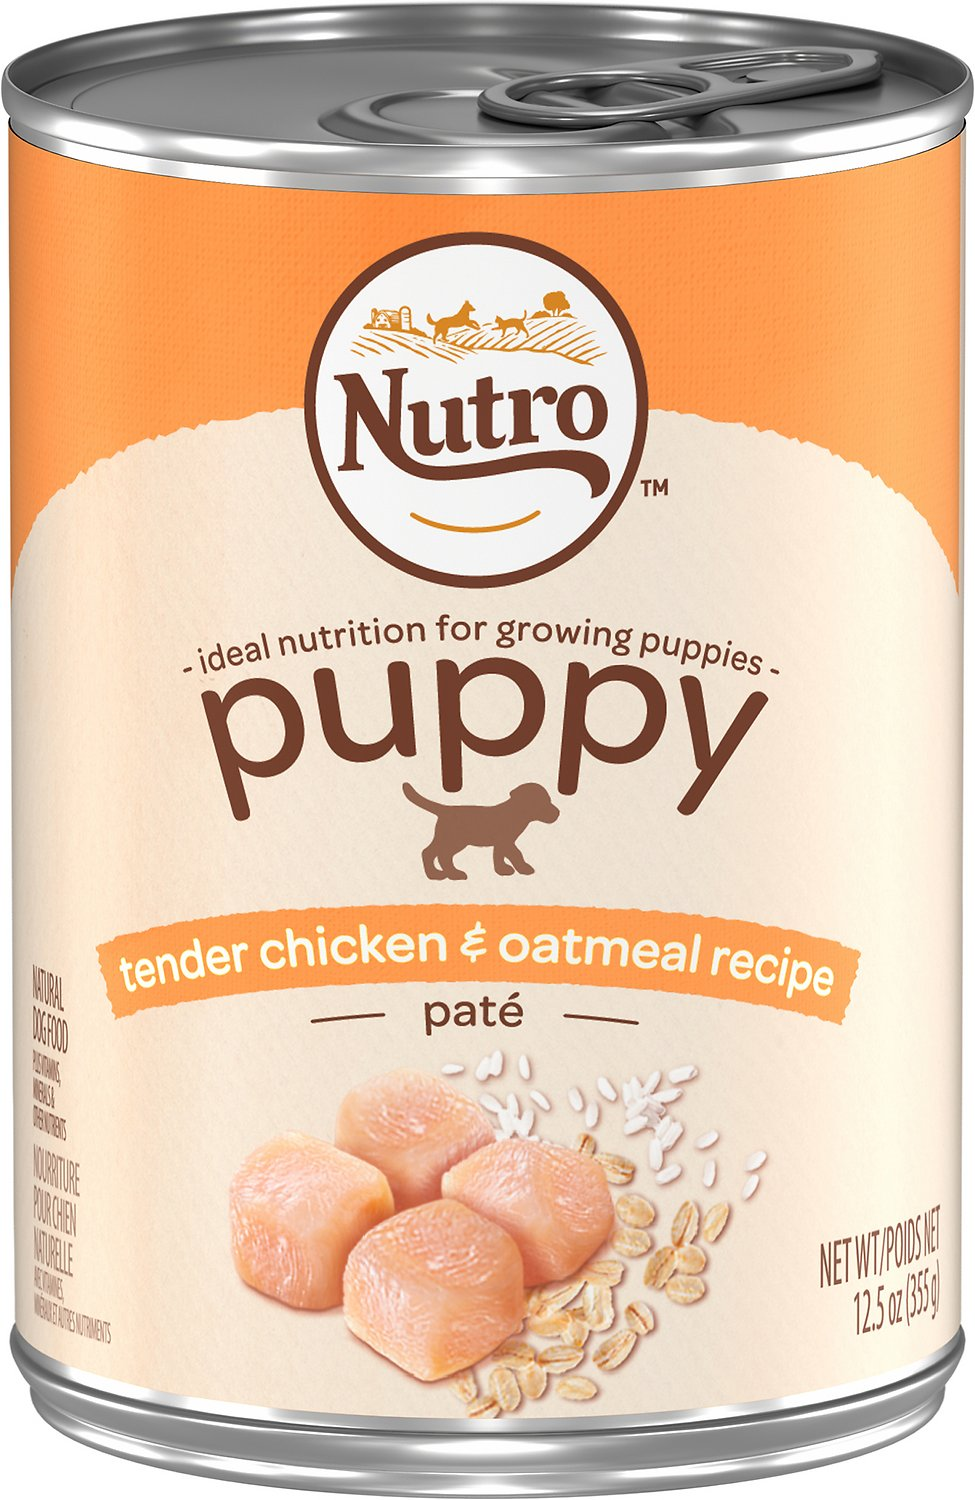 Nutro Puppy Tender Chicken & Oatmeal Recipe Pate Canned Dog Food, 12.5-oz